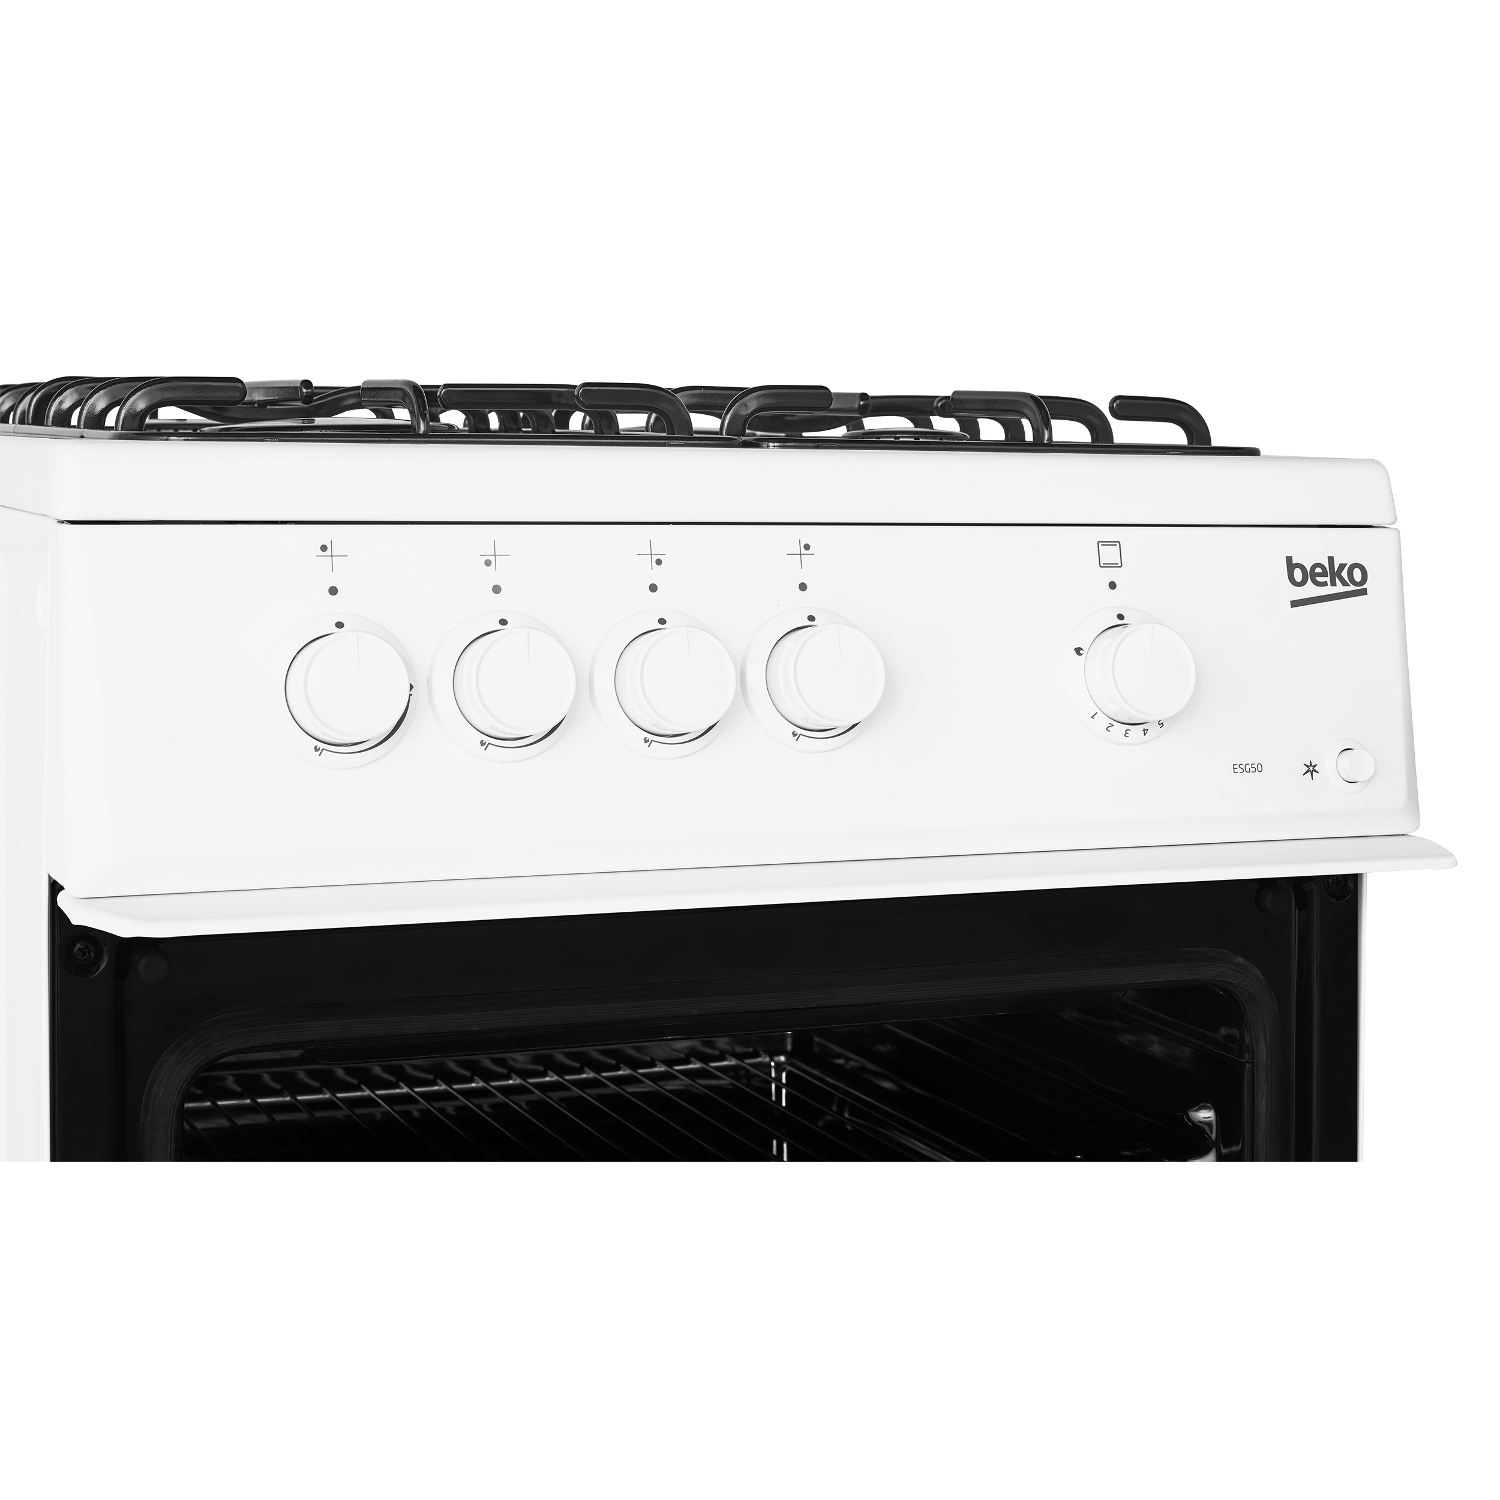 Beko 50cm Single Oven Gas Cooker - White - 6